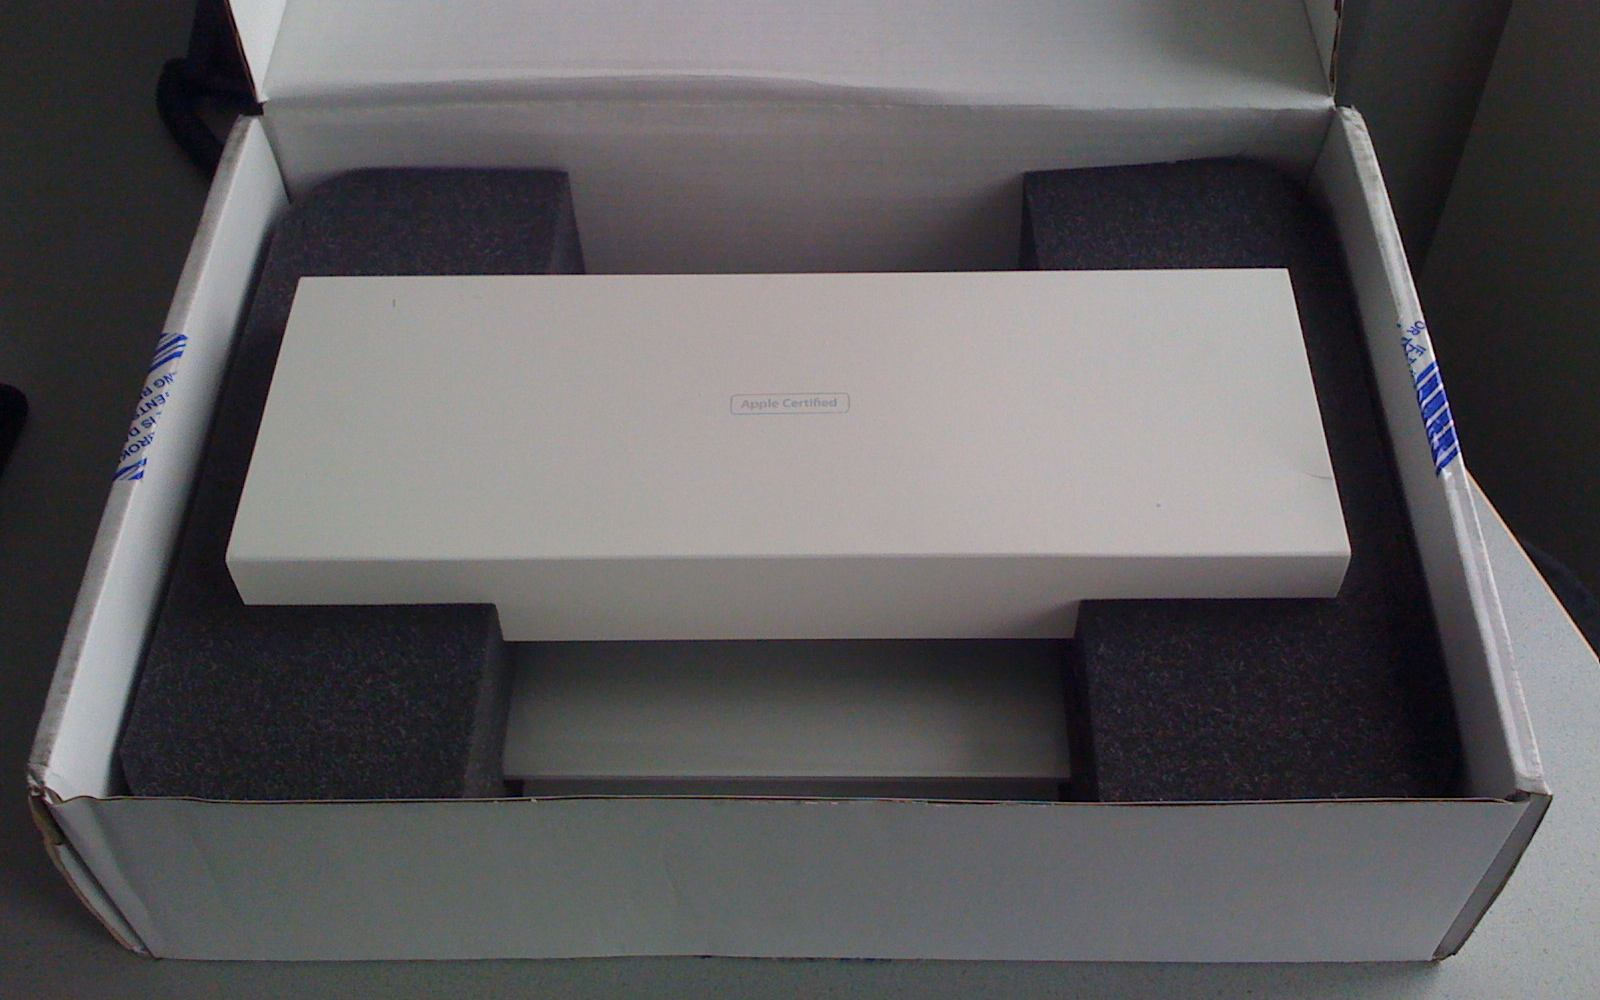 A refurbished MacBook Air in its packaging.